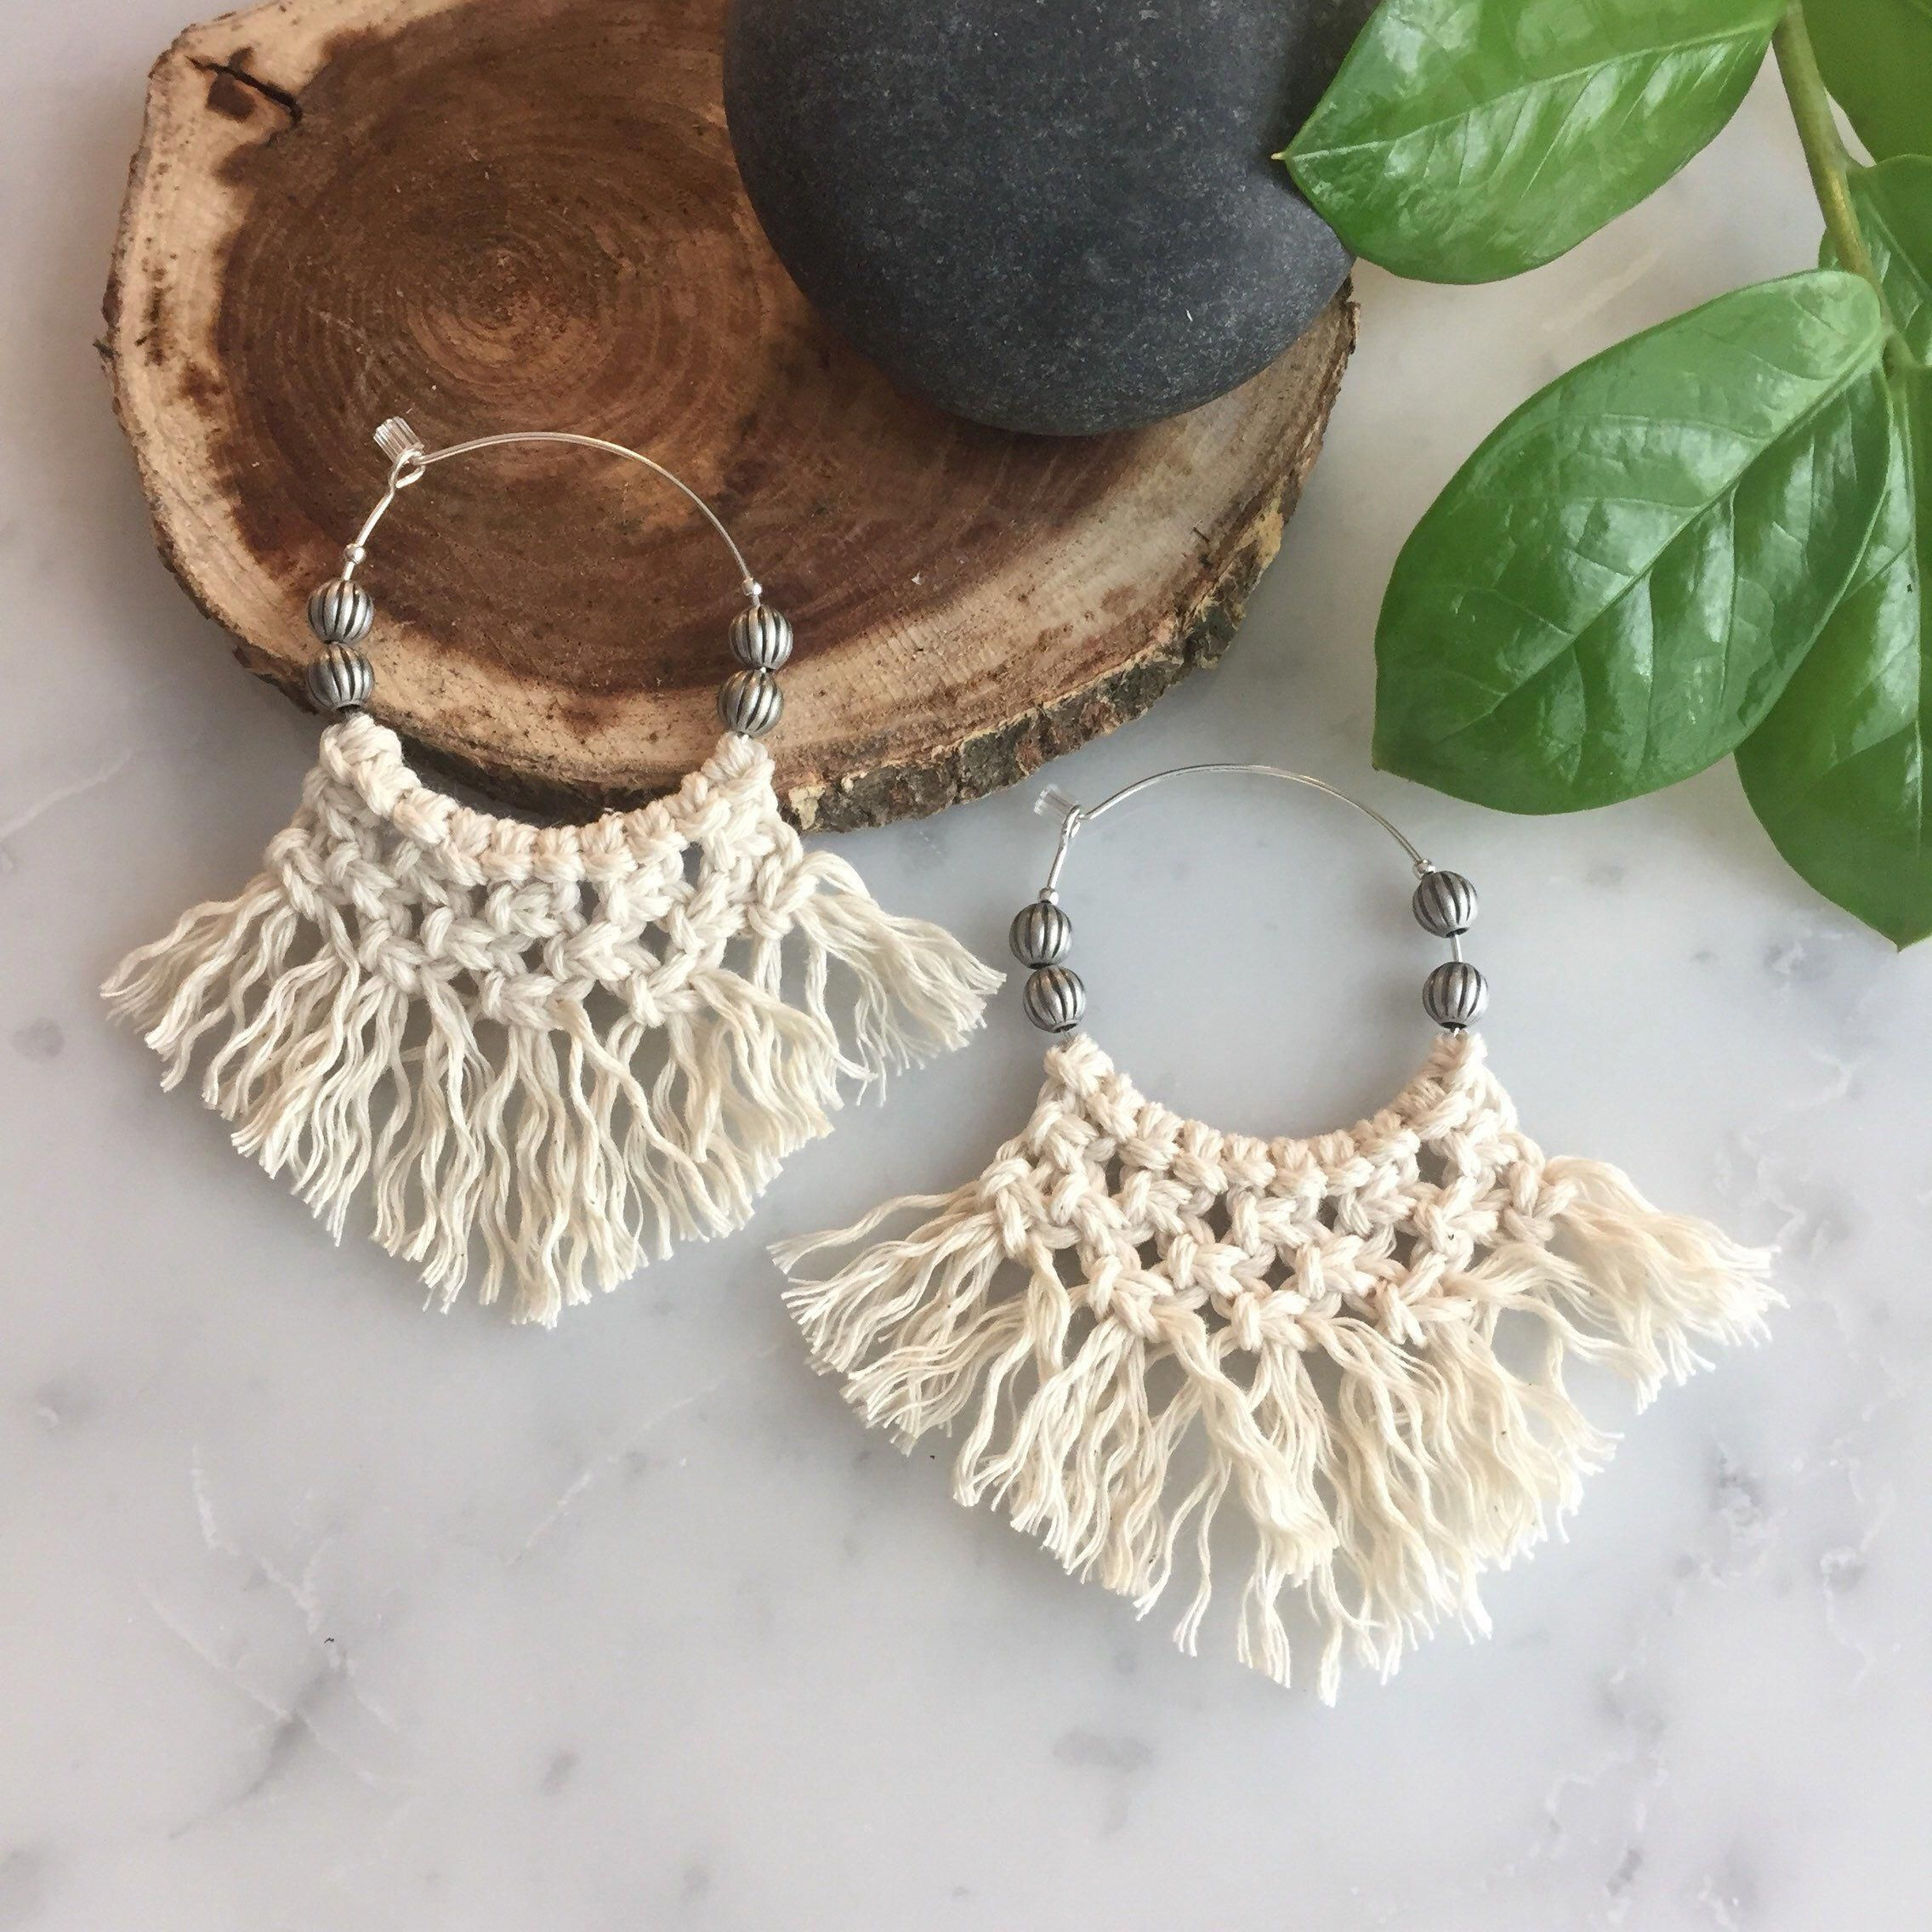 Excited to share this item from my #etsy shop: Macrame earrings - Macrame Hoop Earrings - Extremely lightweight - Unique - can be used as diffuser jewelry #hoopearrings